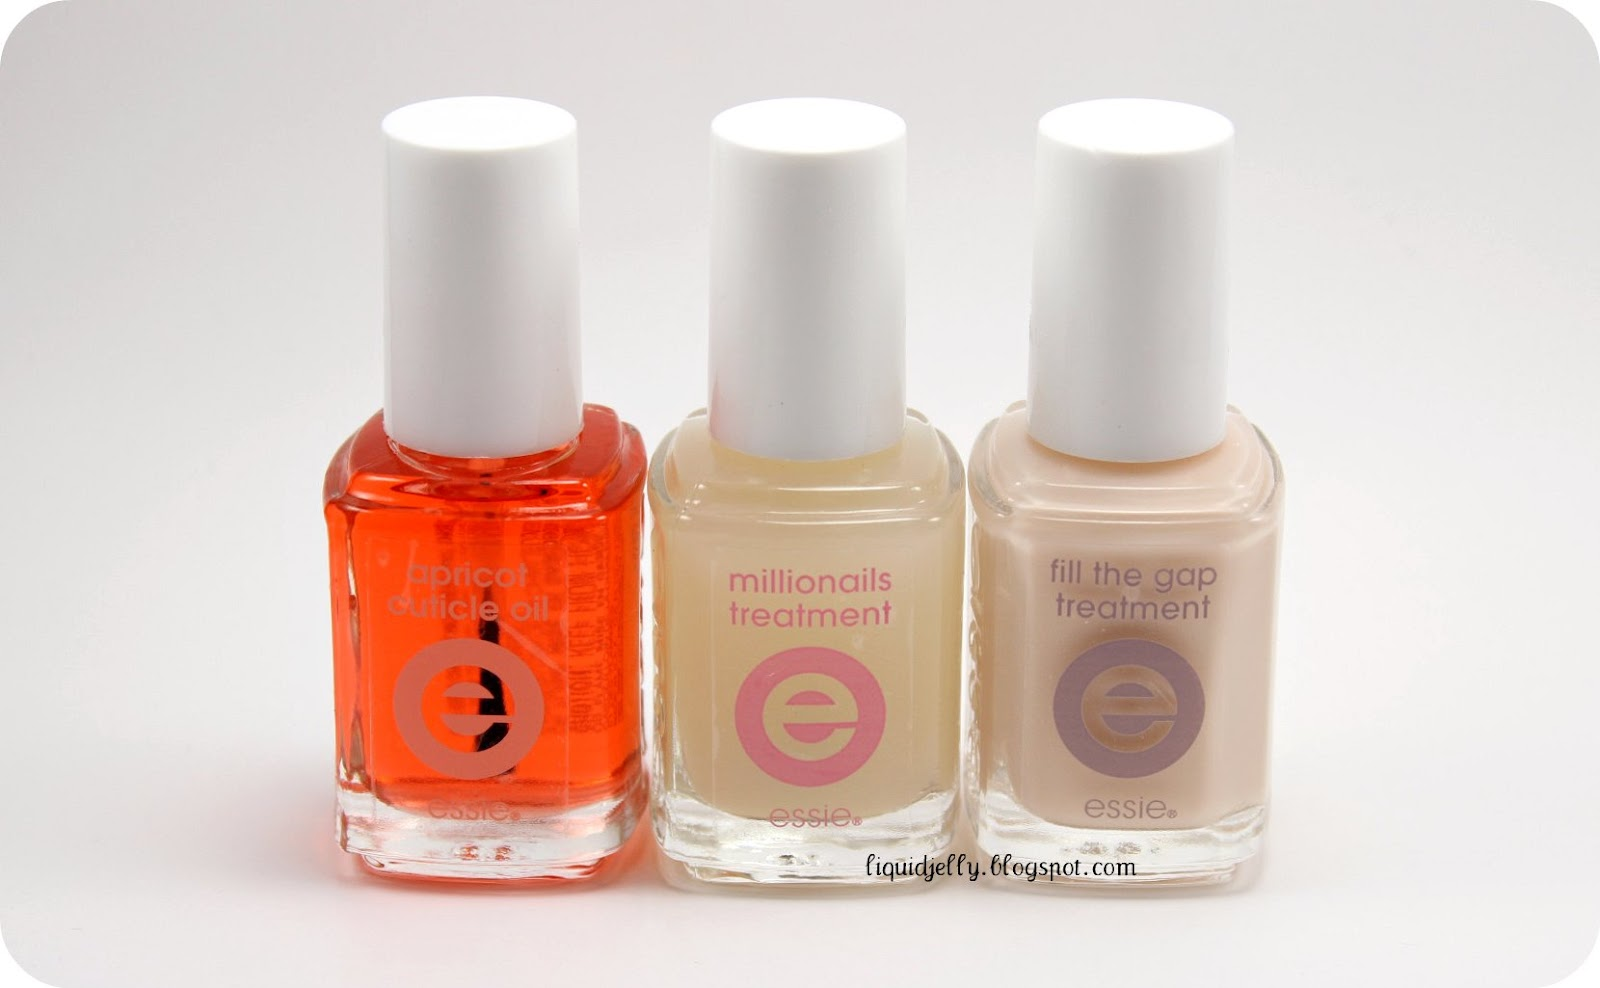 Liquid Jelly: First Impressions: Essie Nail Care Line